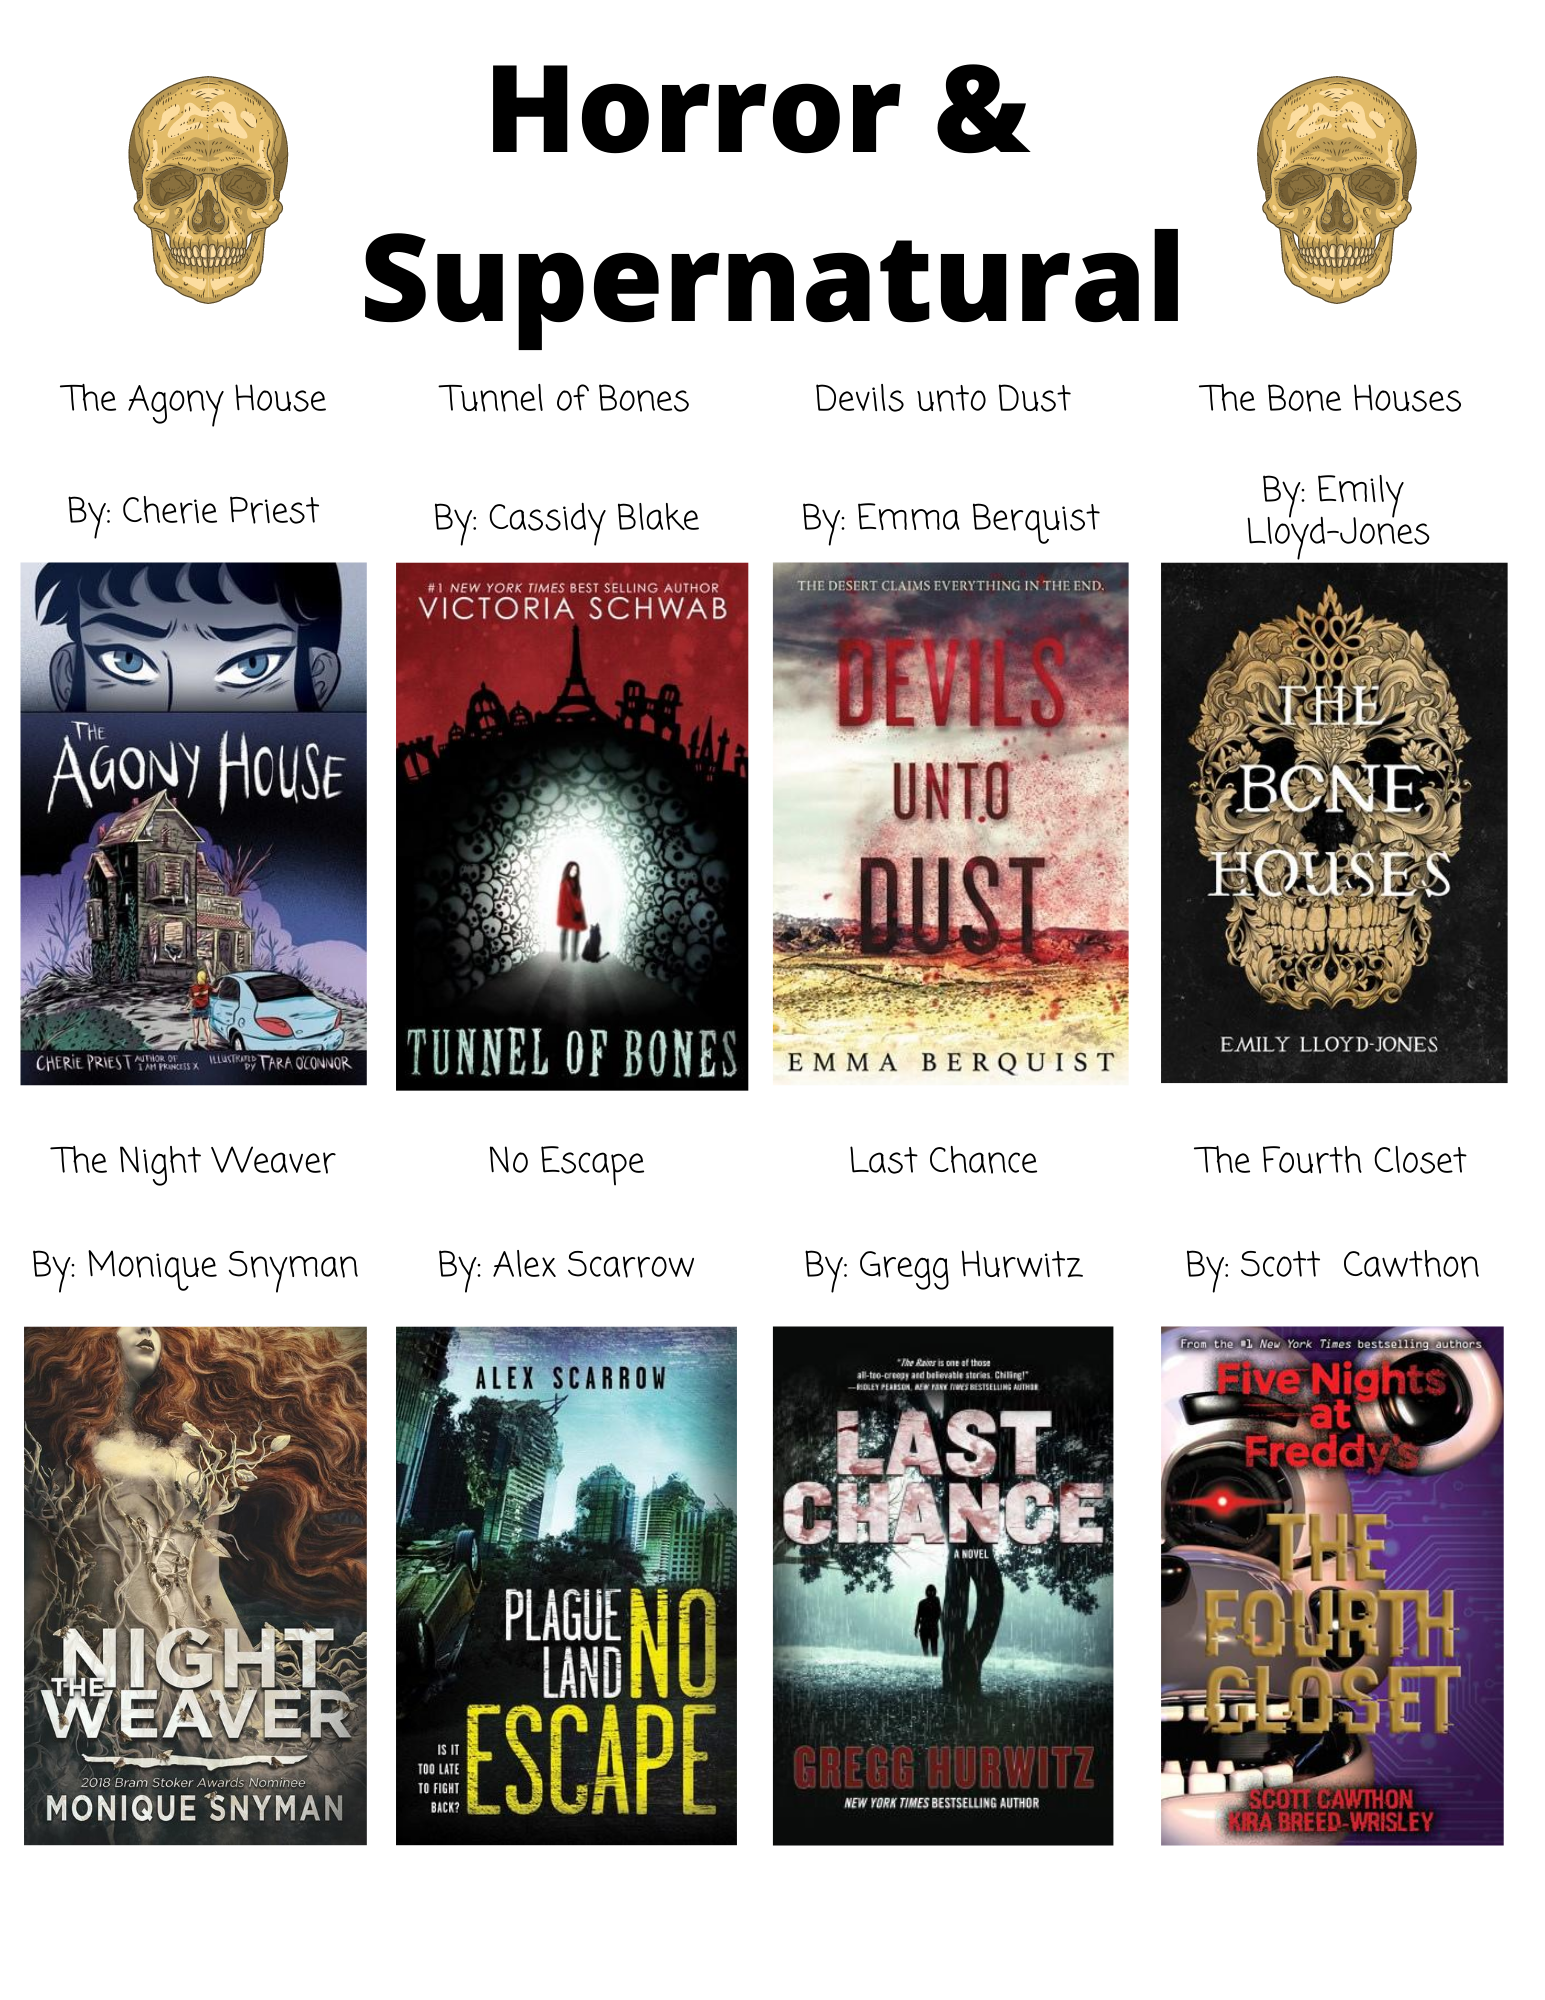 Horror &  Supernatural The Agony House By: Cherie Priest Tunnel of Bones By: Cassidy Blake  Devils unto Dust By: Emma Berquist The Bone Houses By: Emily  Lloyd-Jones The Night Weaver By: Monique Snyman No Escape By: Alex Scarrow Last Chance By: Gregg Hurwitz The Fourth Closet By: Scott  Cawthon Drop Dead Gorgeous  By: R.L. Stine  Cold as Marble By: Zoe Aarsen Wilder Girls By: Rory Power  Remember Me By: Chelsea Bobulski  Open Mic Night at Westminster Cemetery  By: Mary Amato  Out of Salem  By: Hal Schrieve  The Fade  By: Demitria Lunetta  The Haunted  By: Danielle Vega